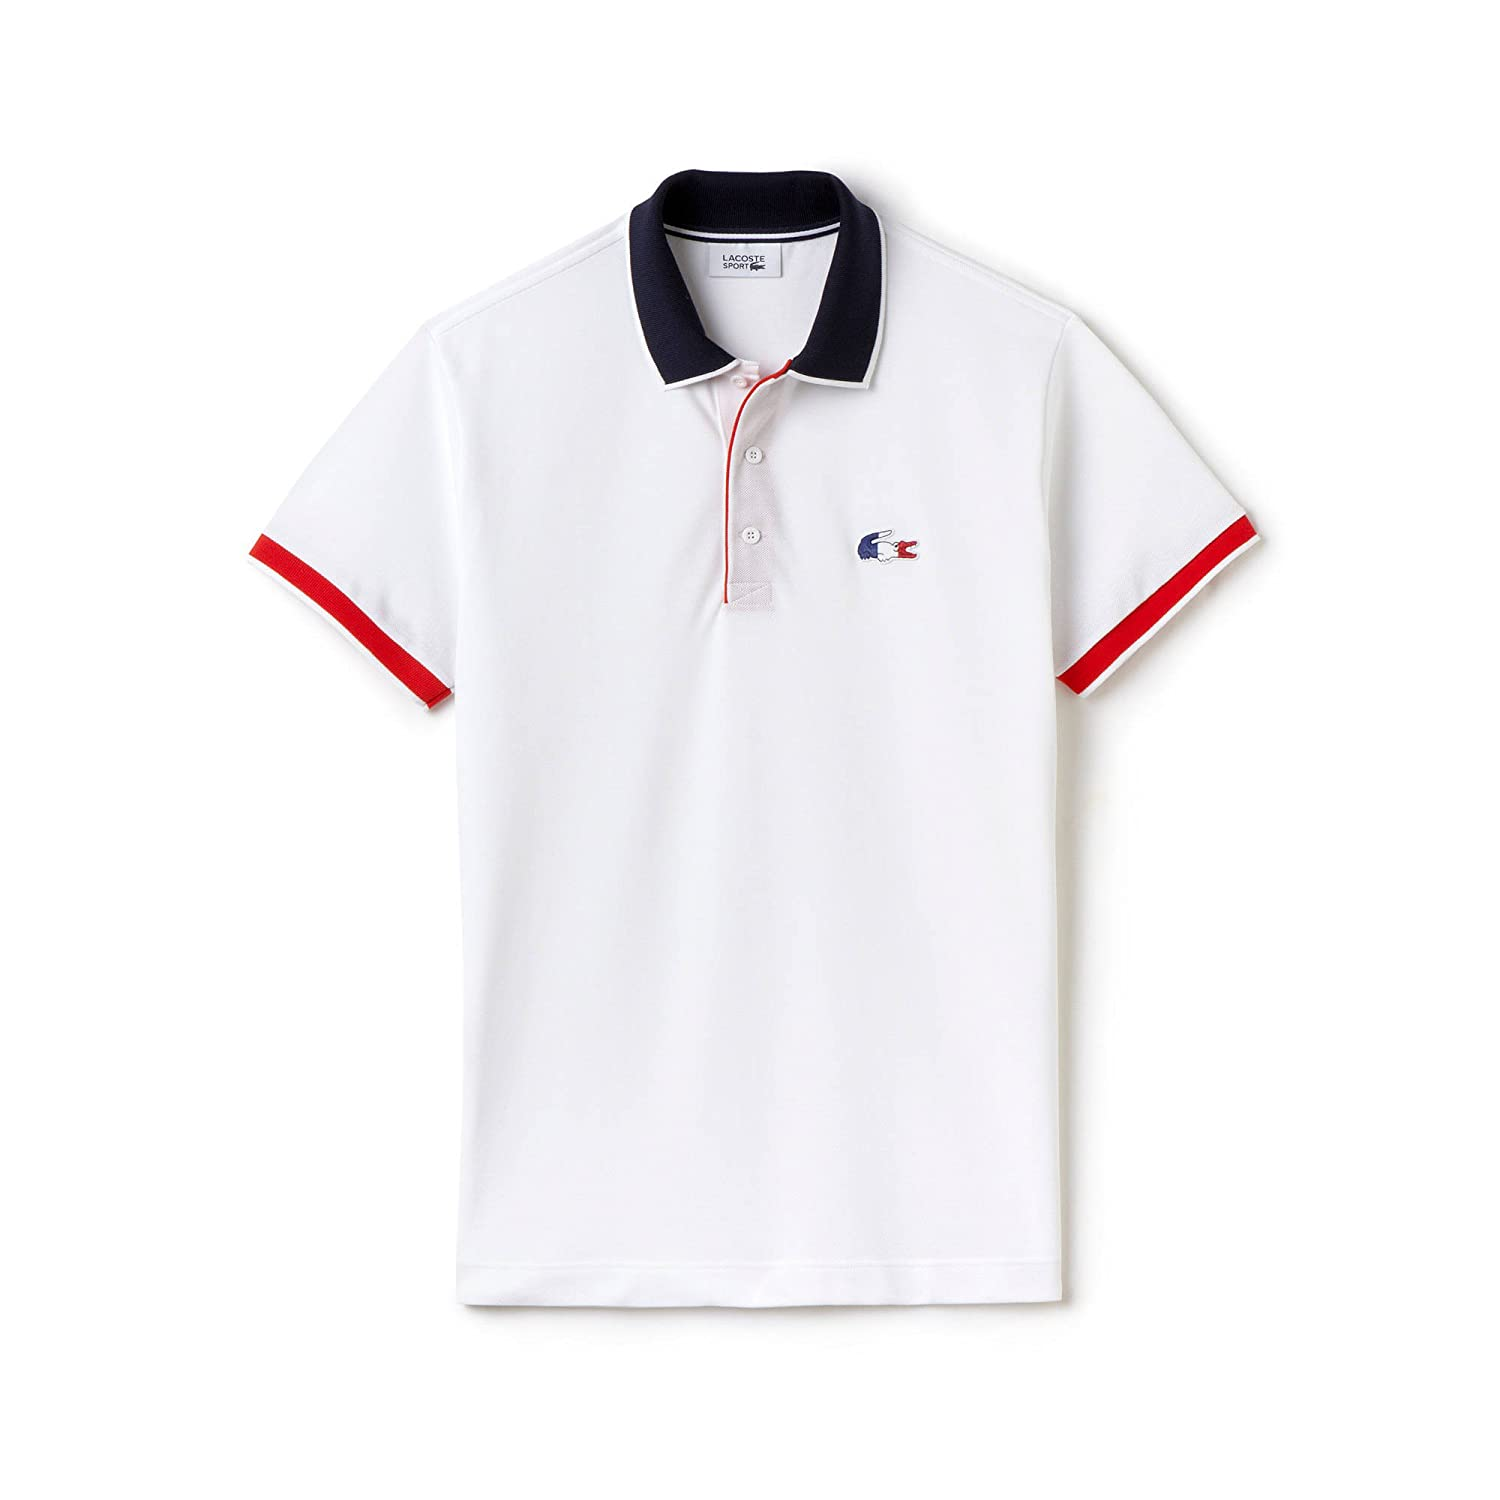 Lacoste Polo ph7607 00 5qt Sport Blanc Marine Edition Limited ...